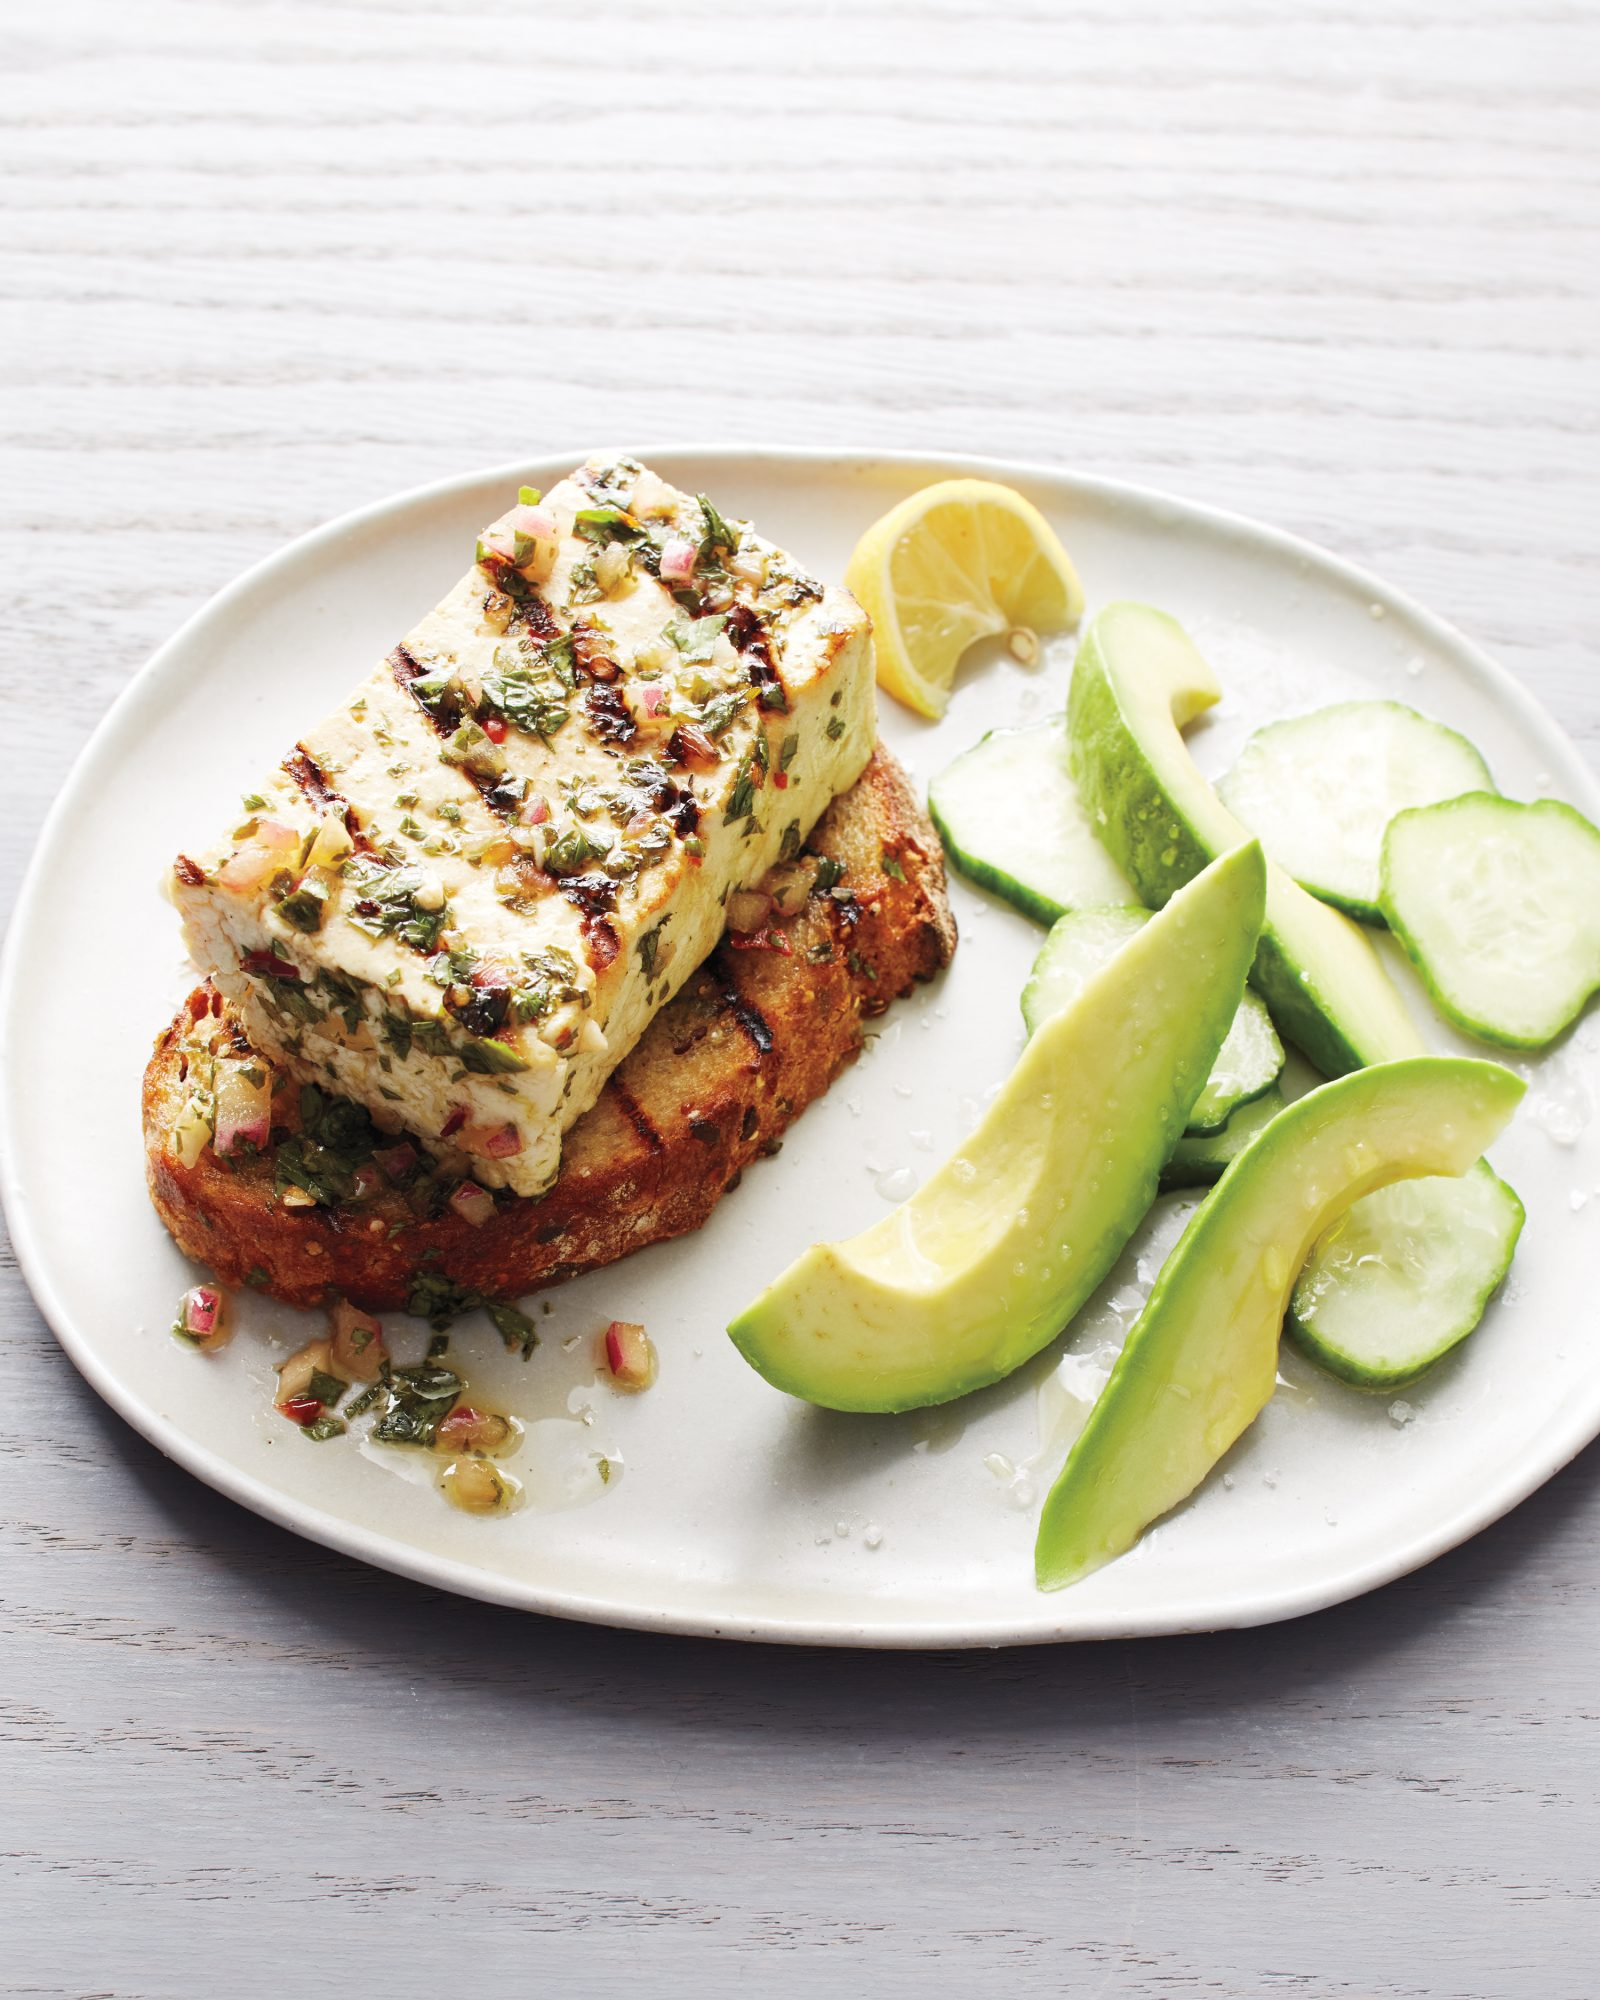 Grilled Tofu with Chimichurri on Grilled Bread